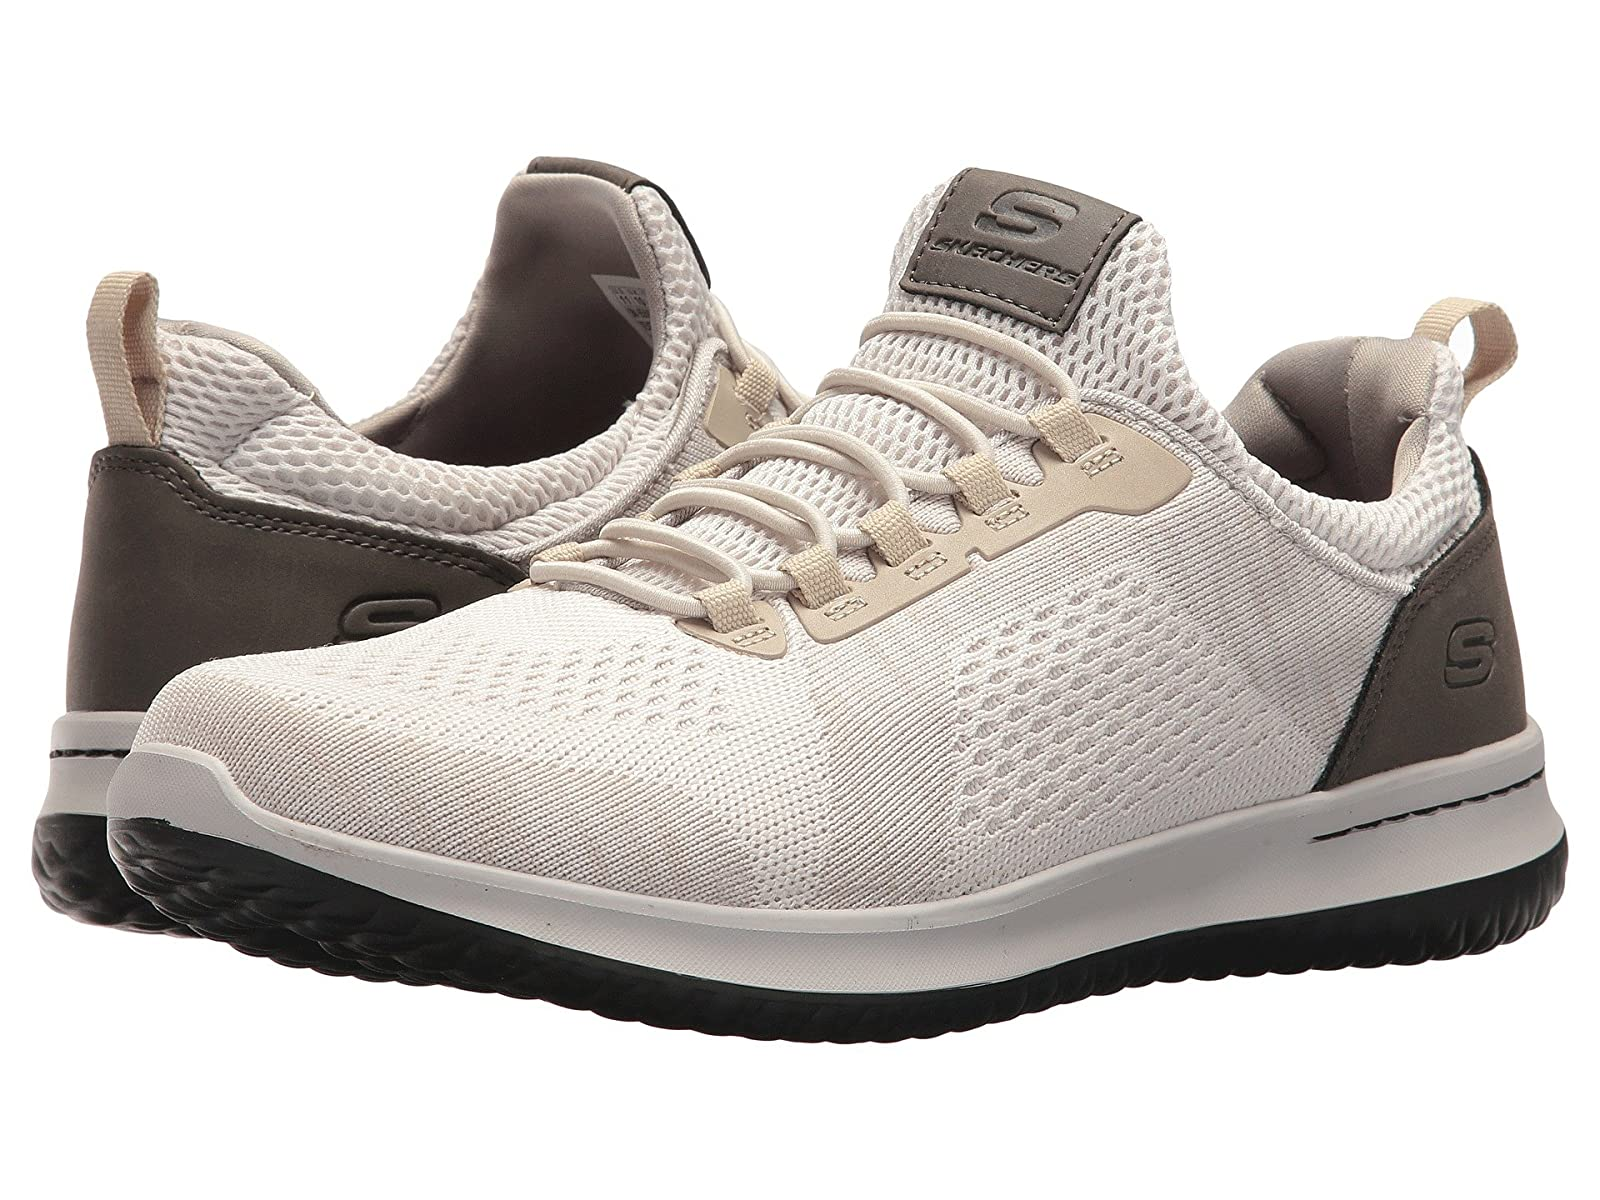 SKECHERS Classic Fit Delson Delson Fit Brewton <Man's/Woman's<uses 08516b